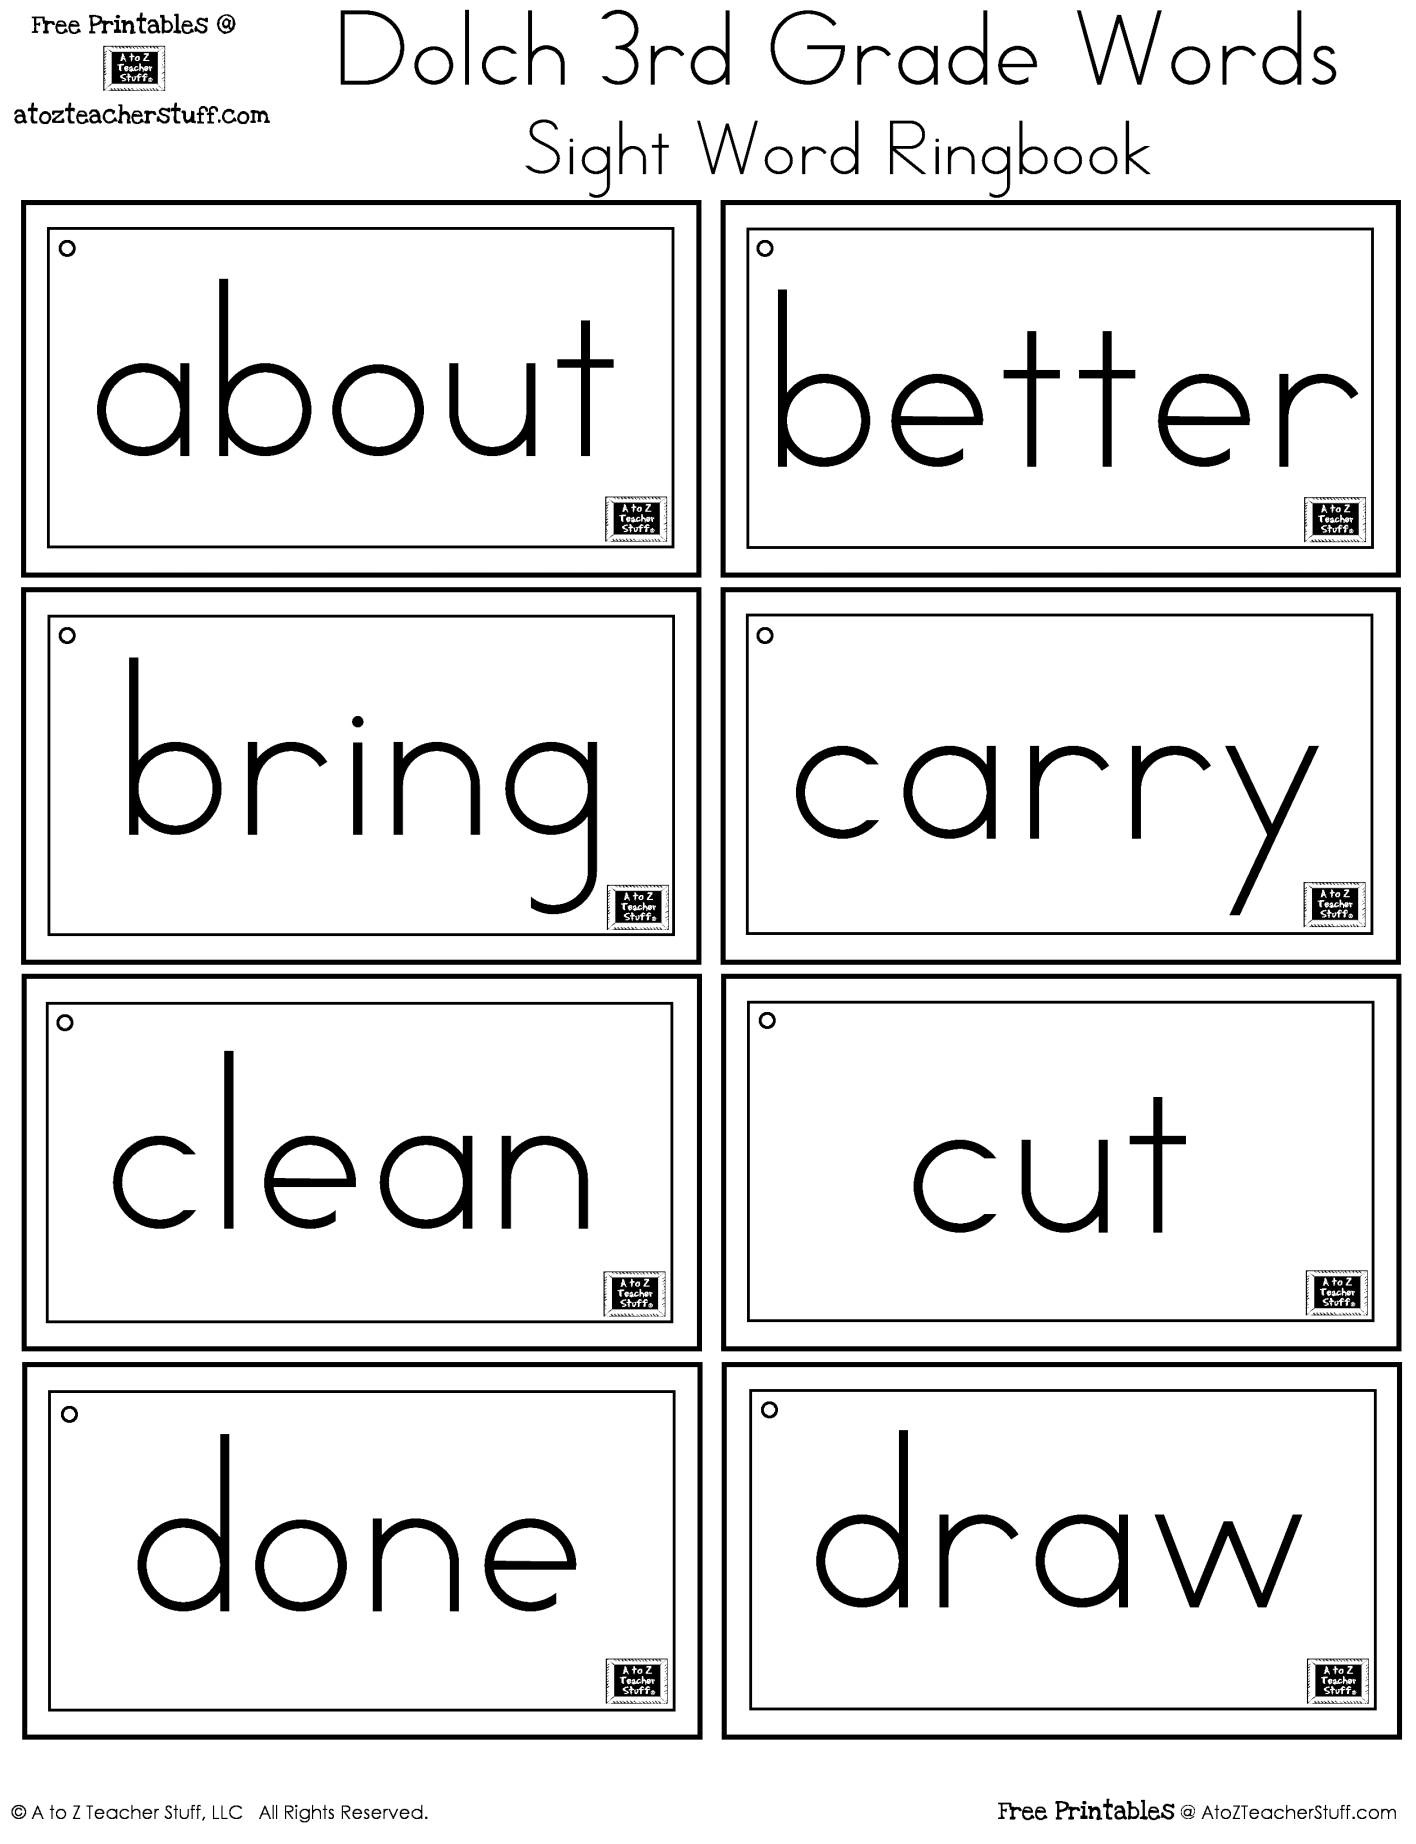 photograph relating to Printable Sight Words referred to as 3rd Quality Dolch Sight Words and phrases Ring Guide A towards Z Instructor